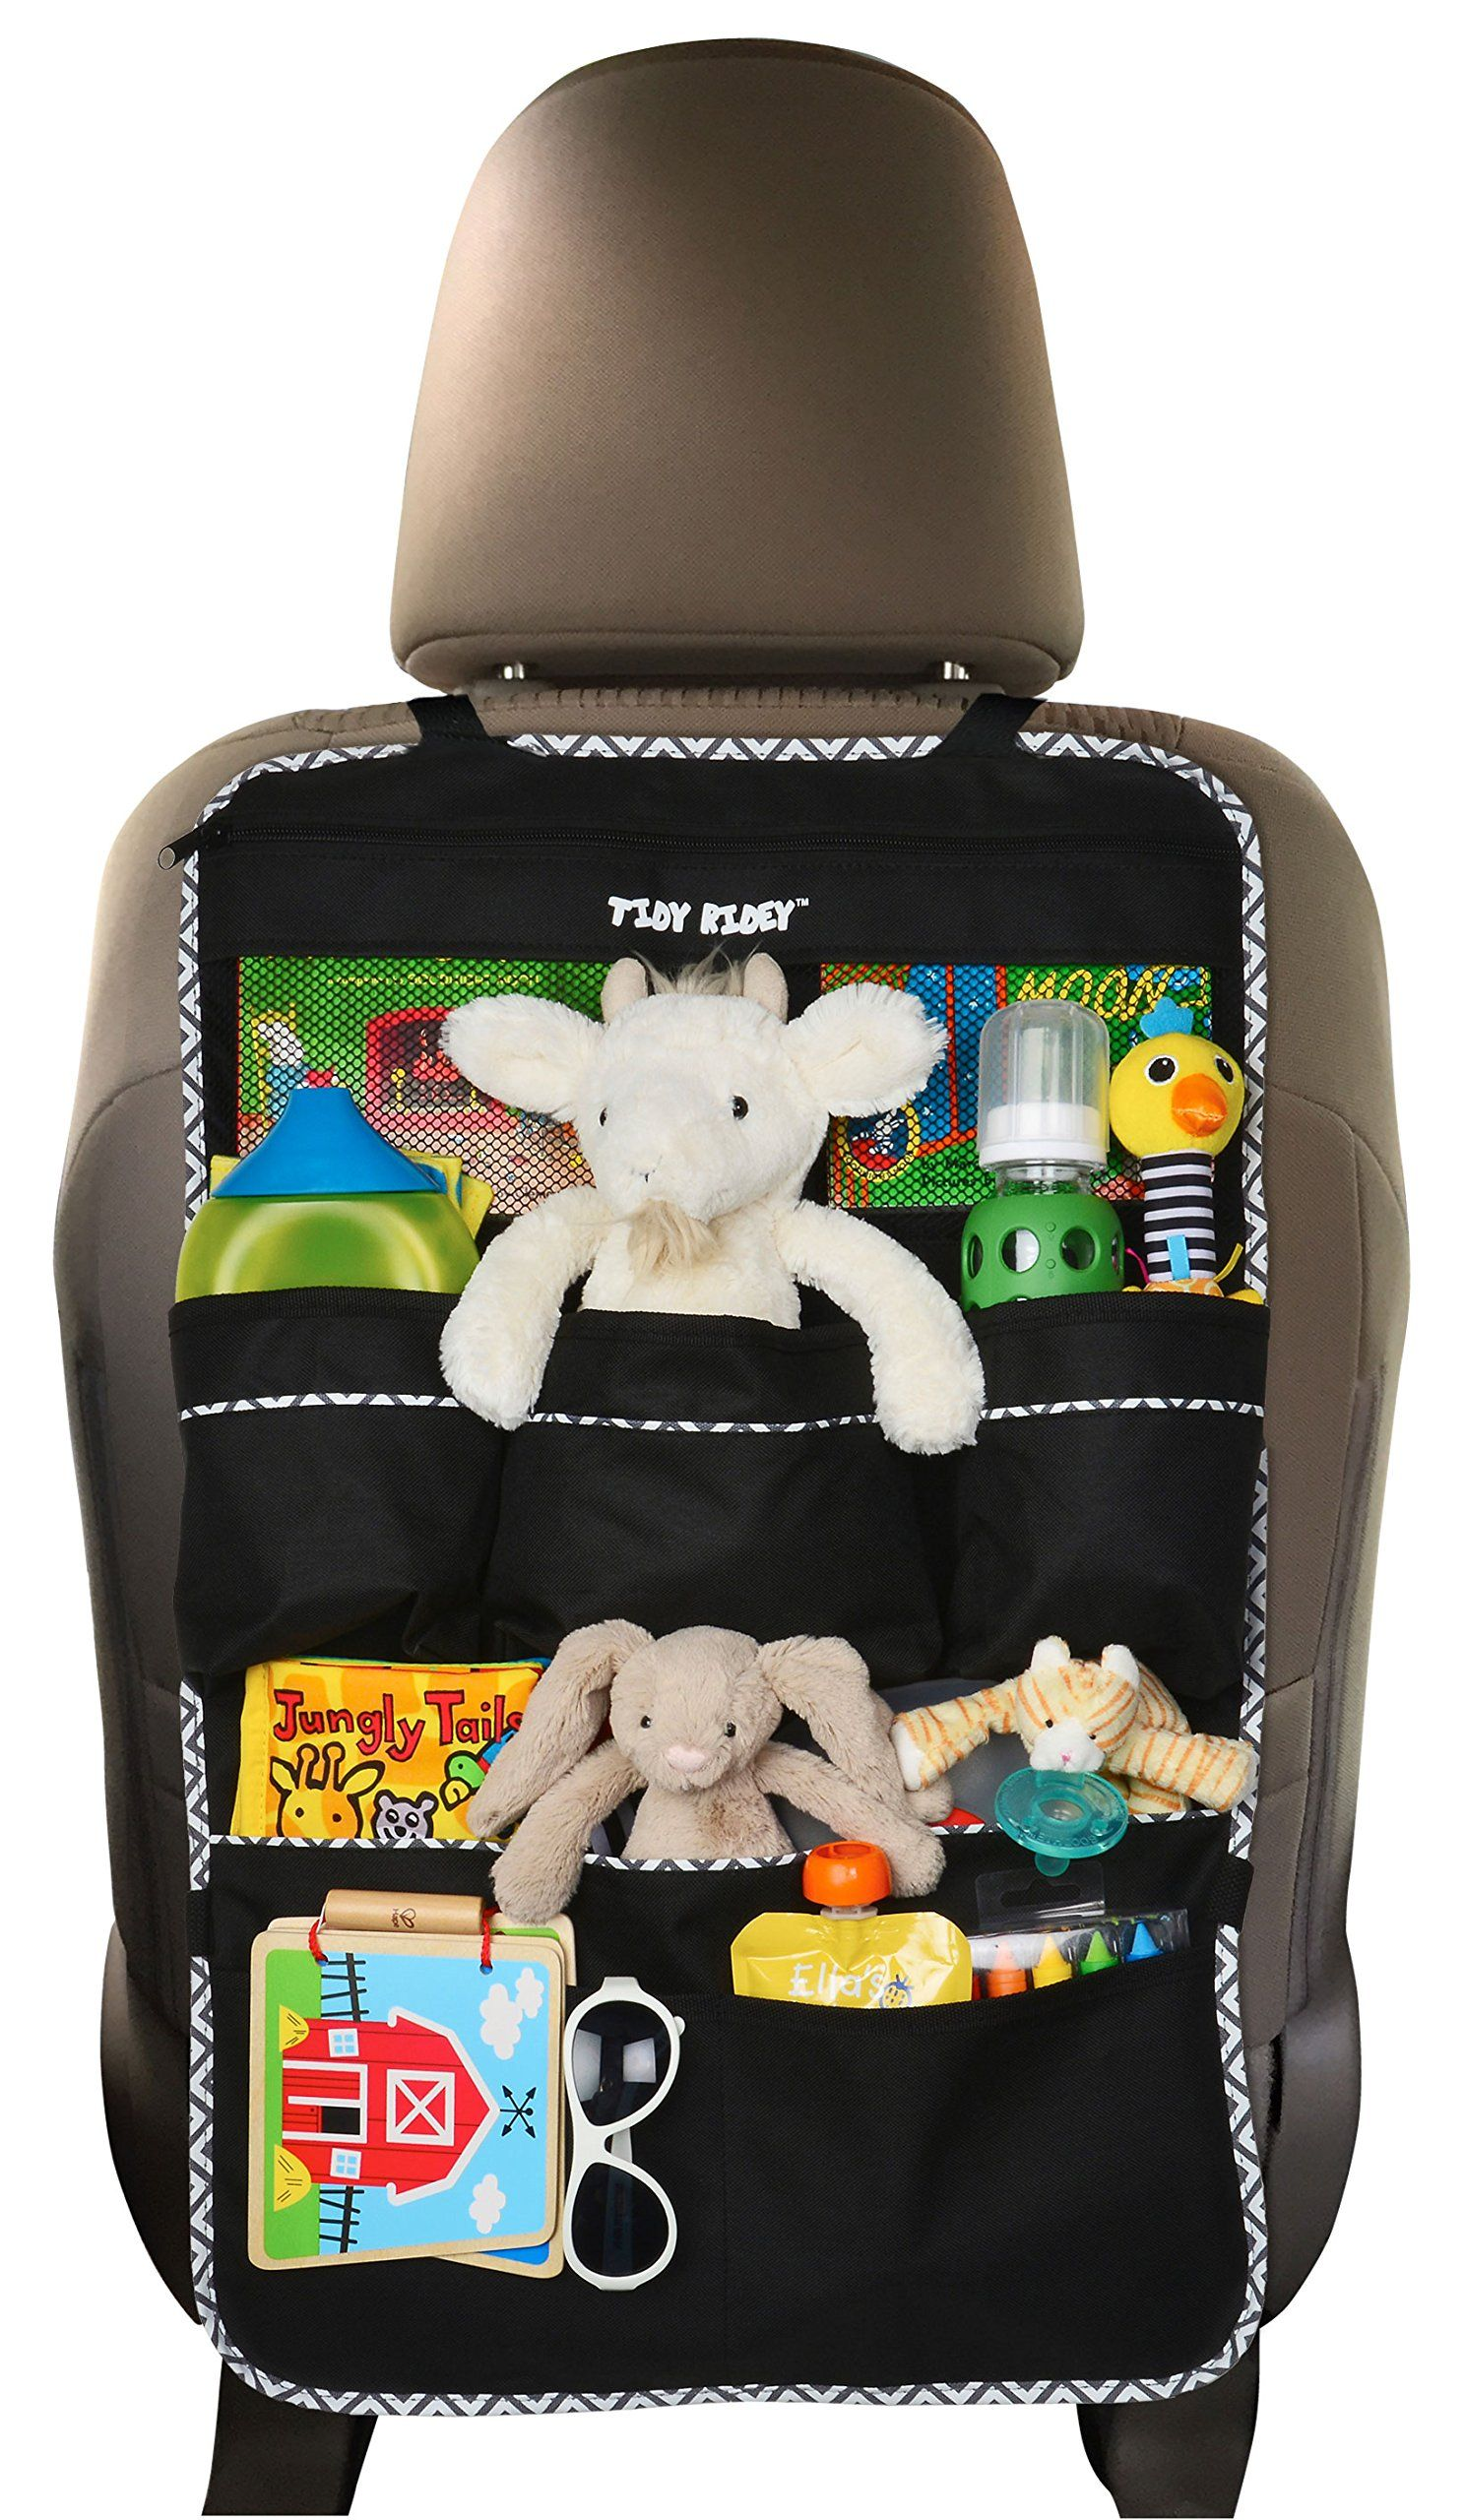 premium backseat organizer for kids cars extra large size covers back of seat